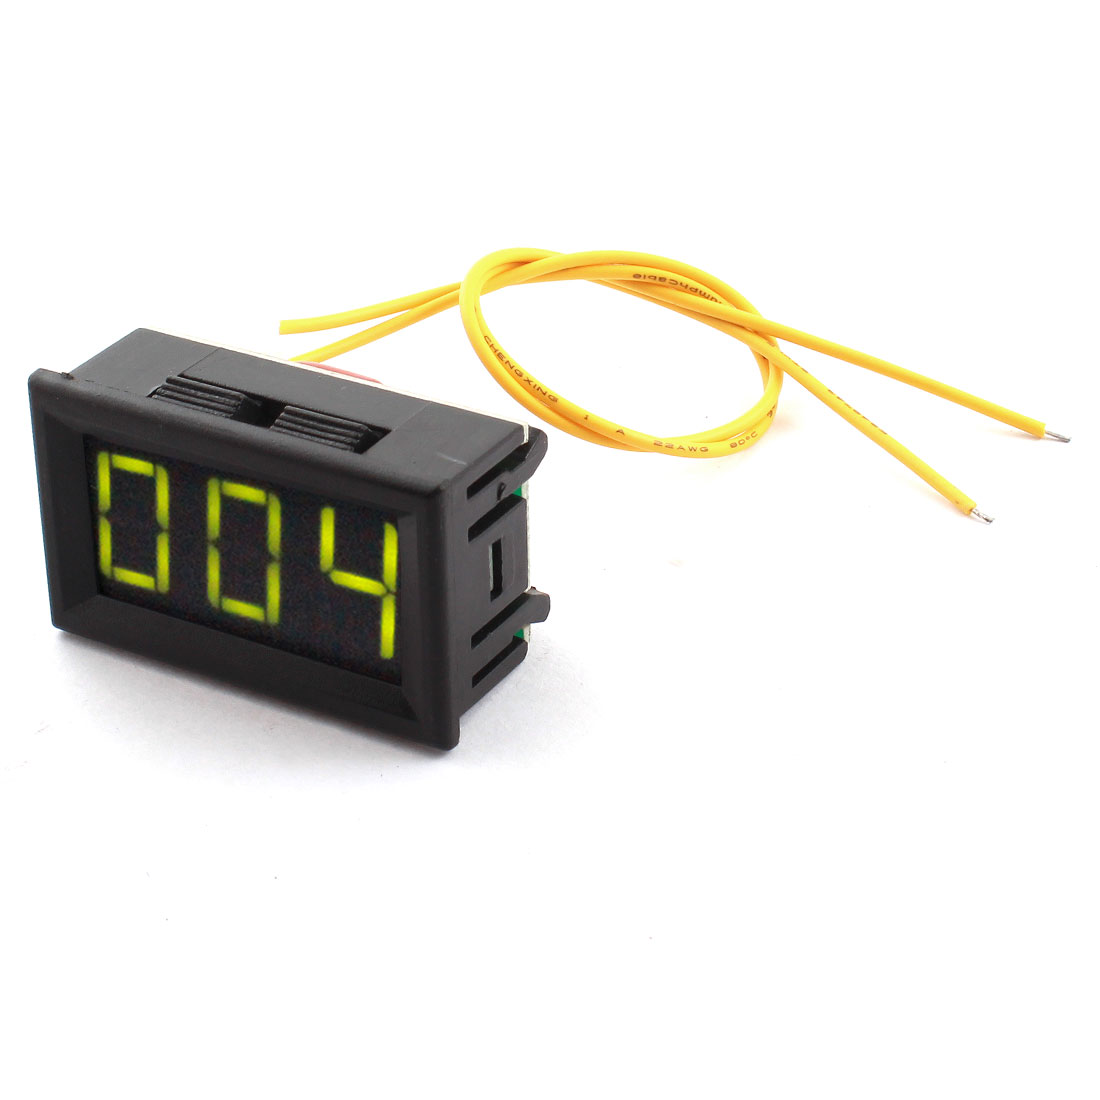 AC12V-380V 7 Segment Green Digits 3-Bits LED Digital Display Panel Gauge Voltmeter Voltage Meter